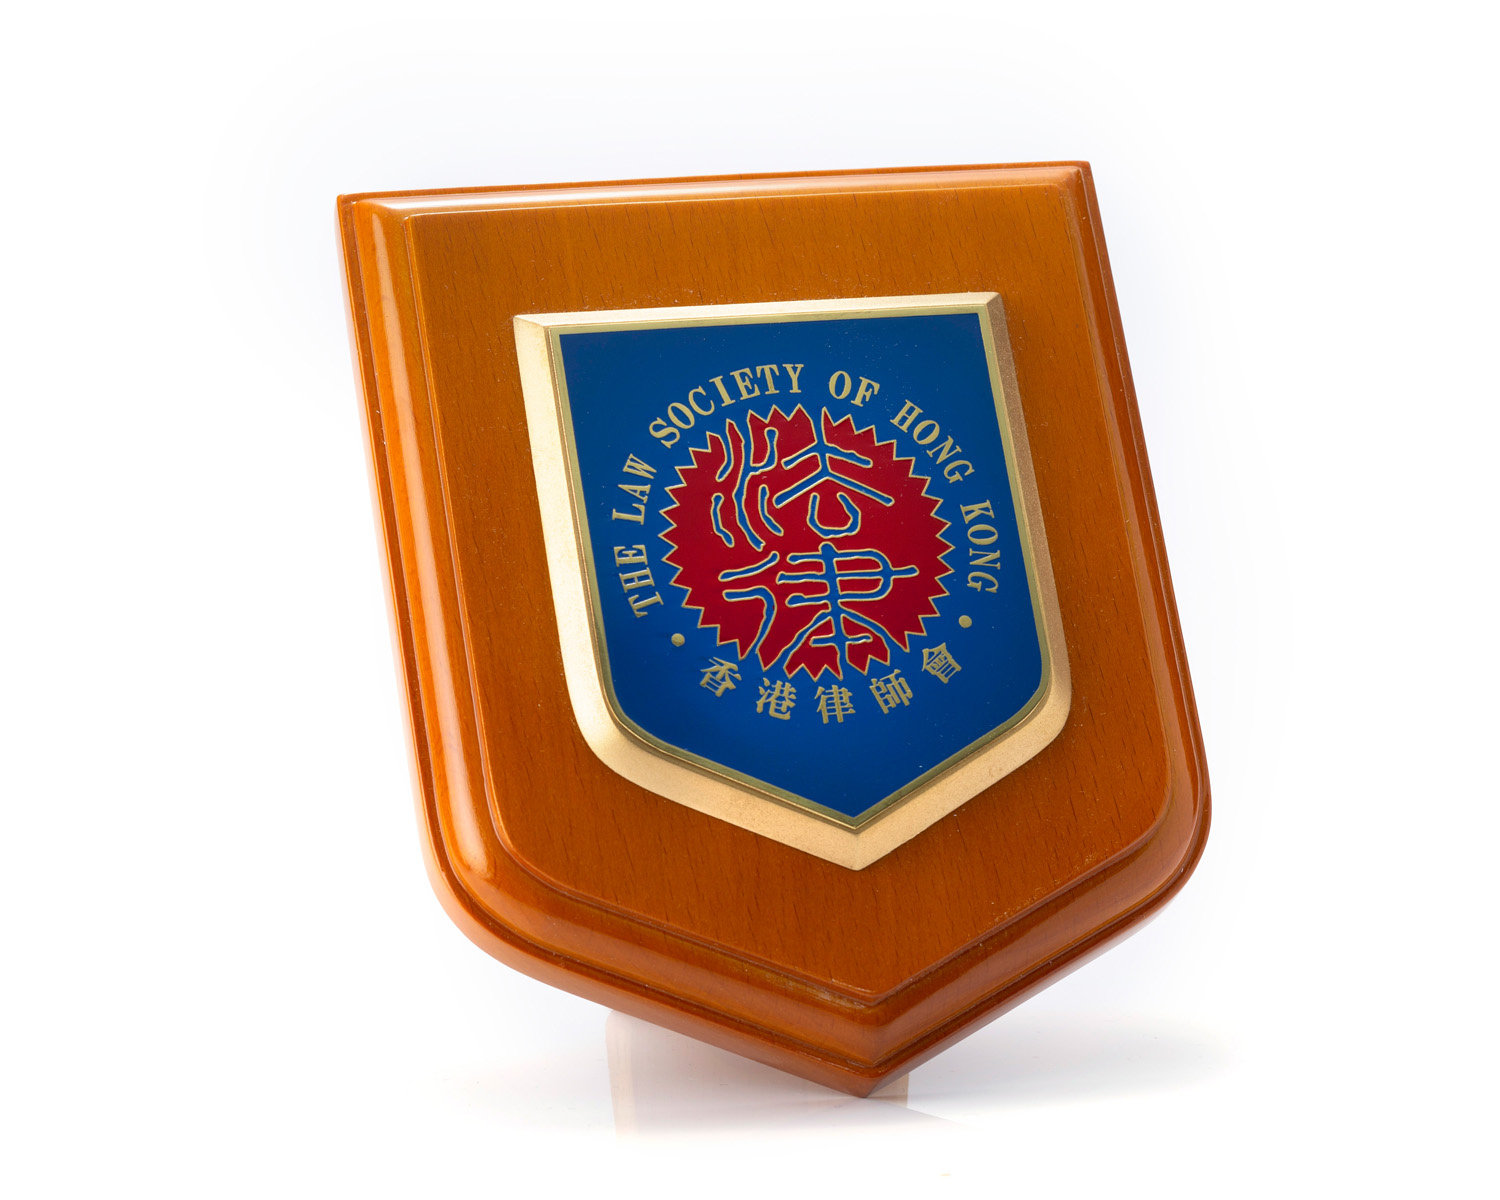 Law Society Wooden Plaque